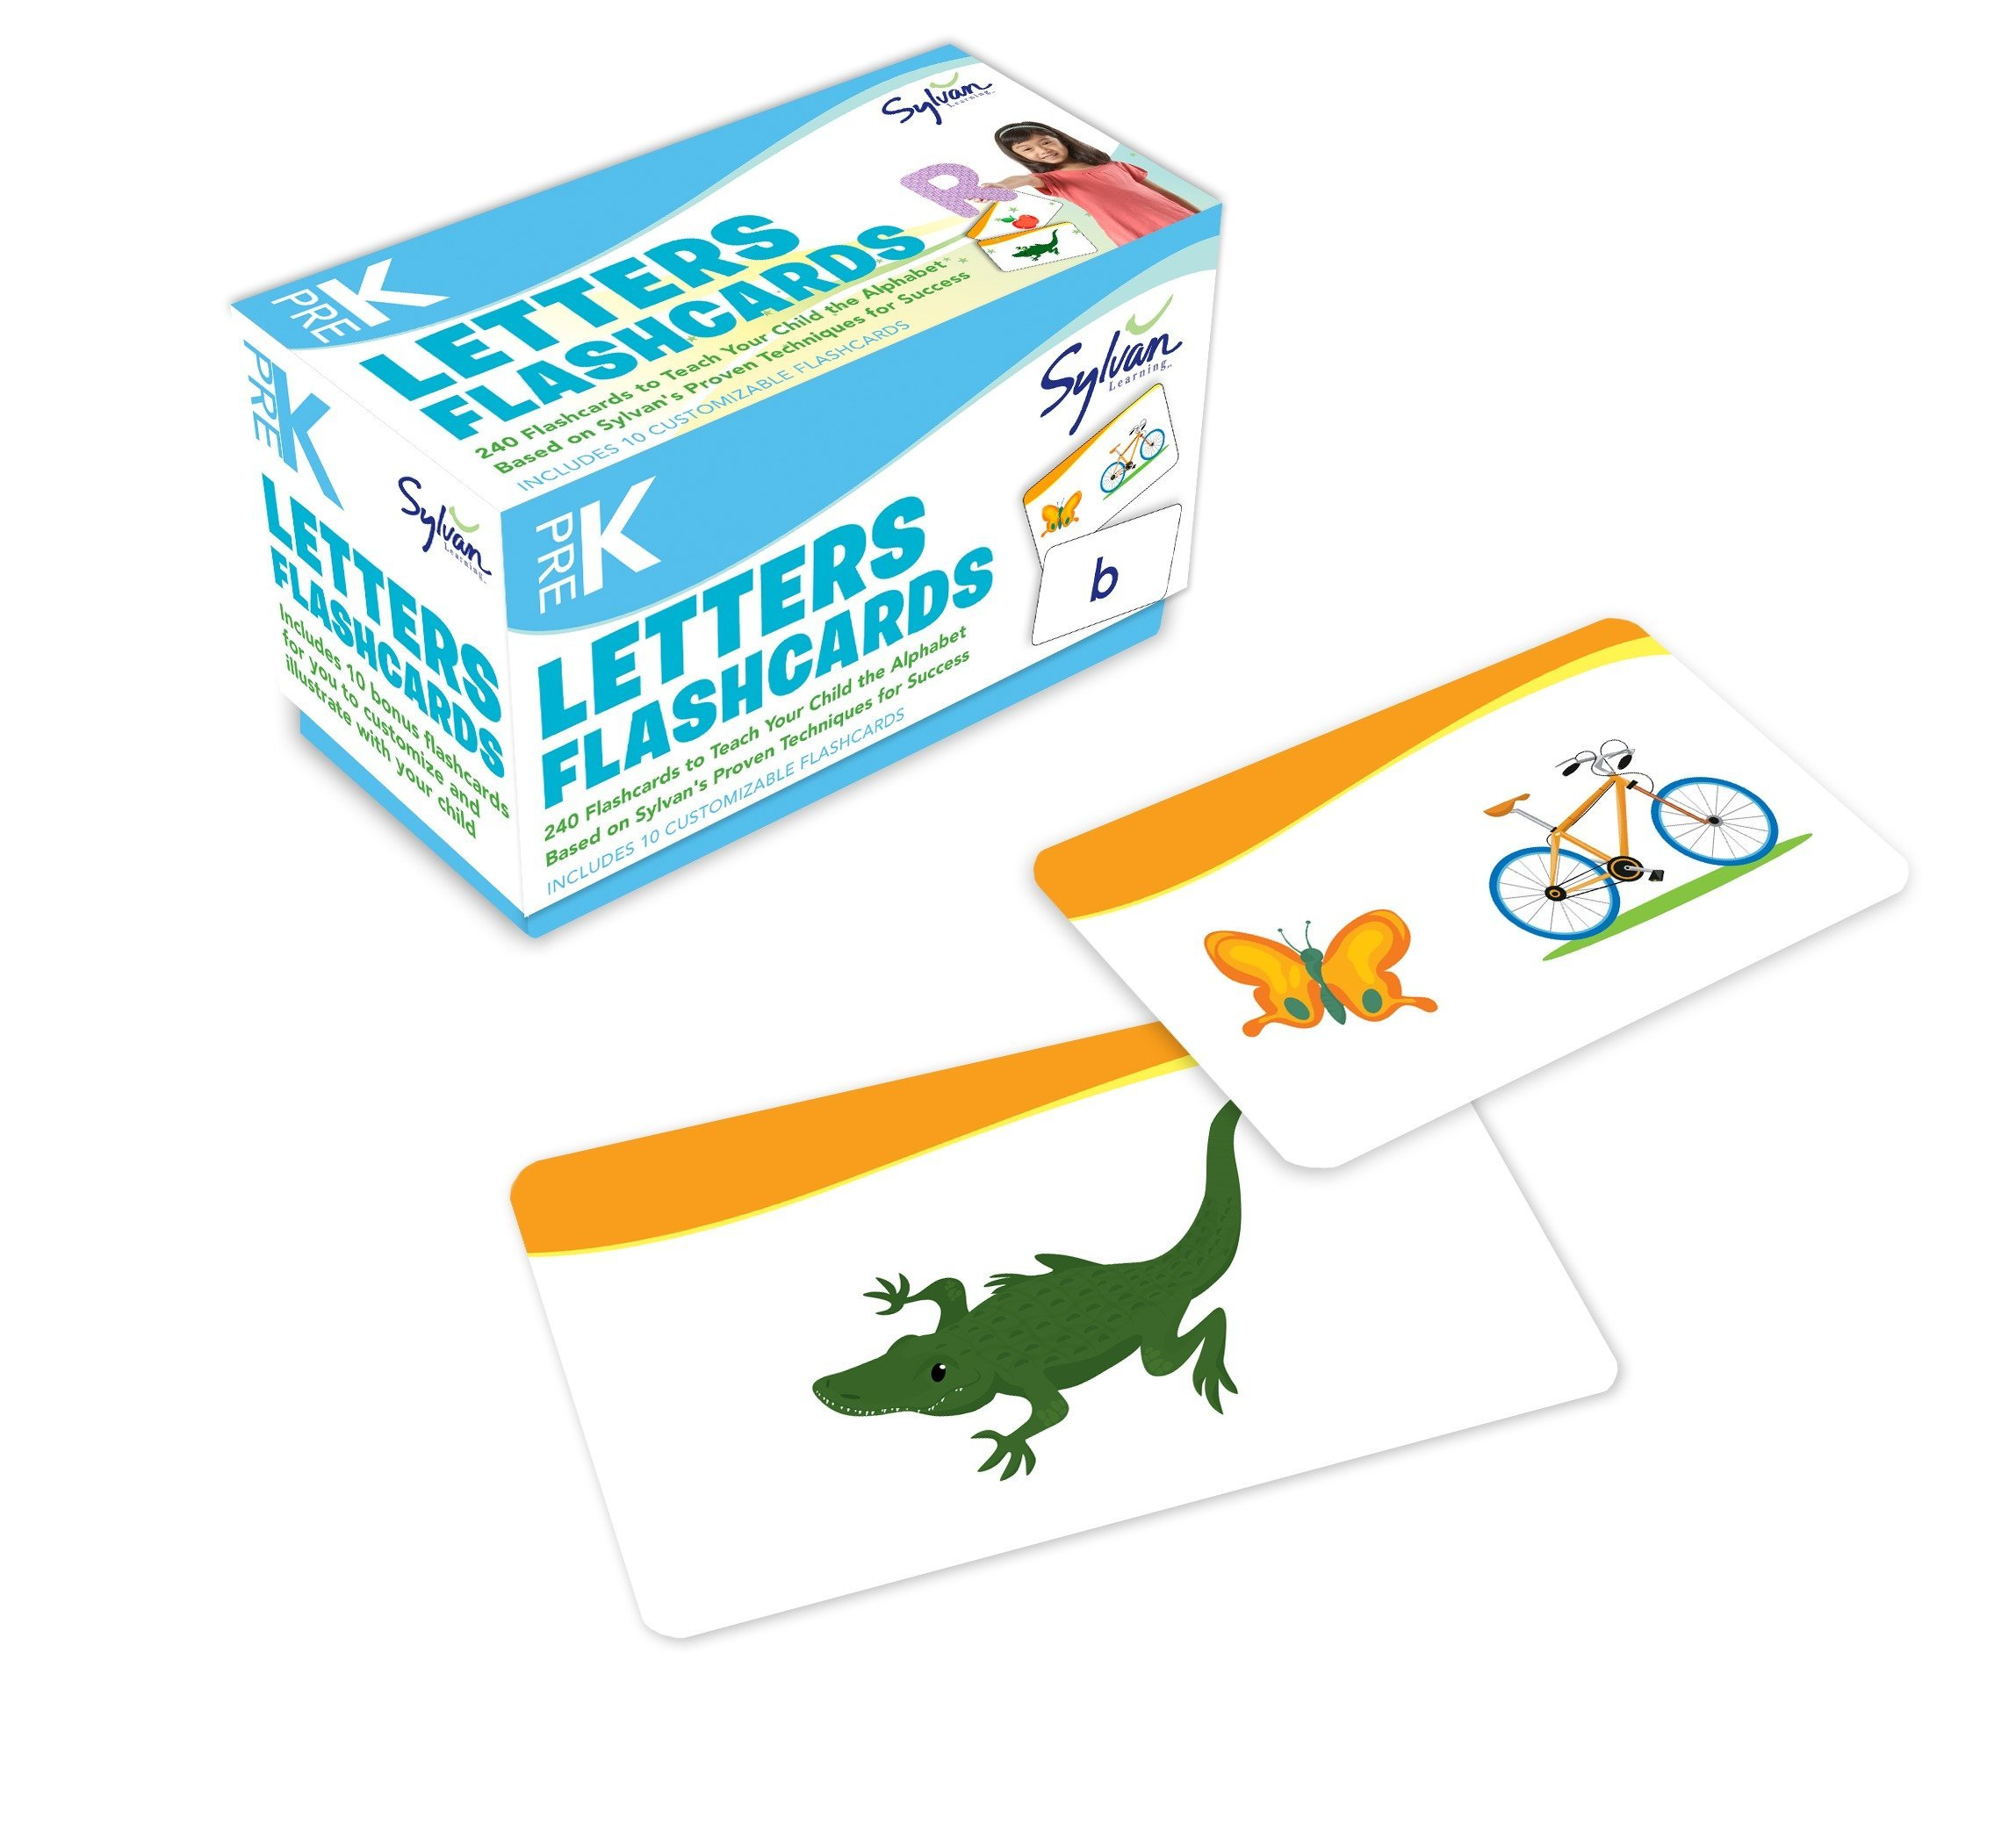 Pre-K Letters Flashcards: 240 Flashcards for Building Better Letter Skills Based on Sylvan's Proven Techniques for Success (Sylvan Language Arts Flashcards) by Brand: Sylvan Learning Publishing